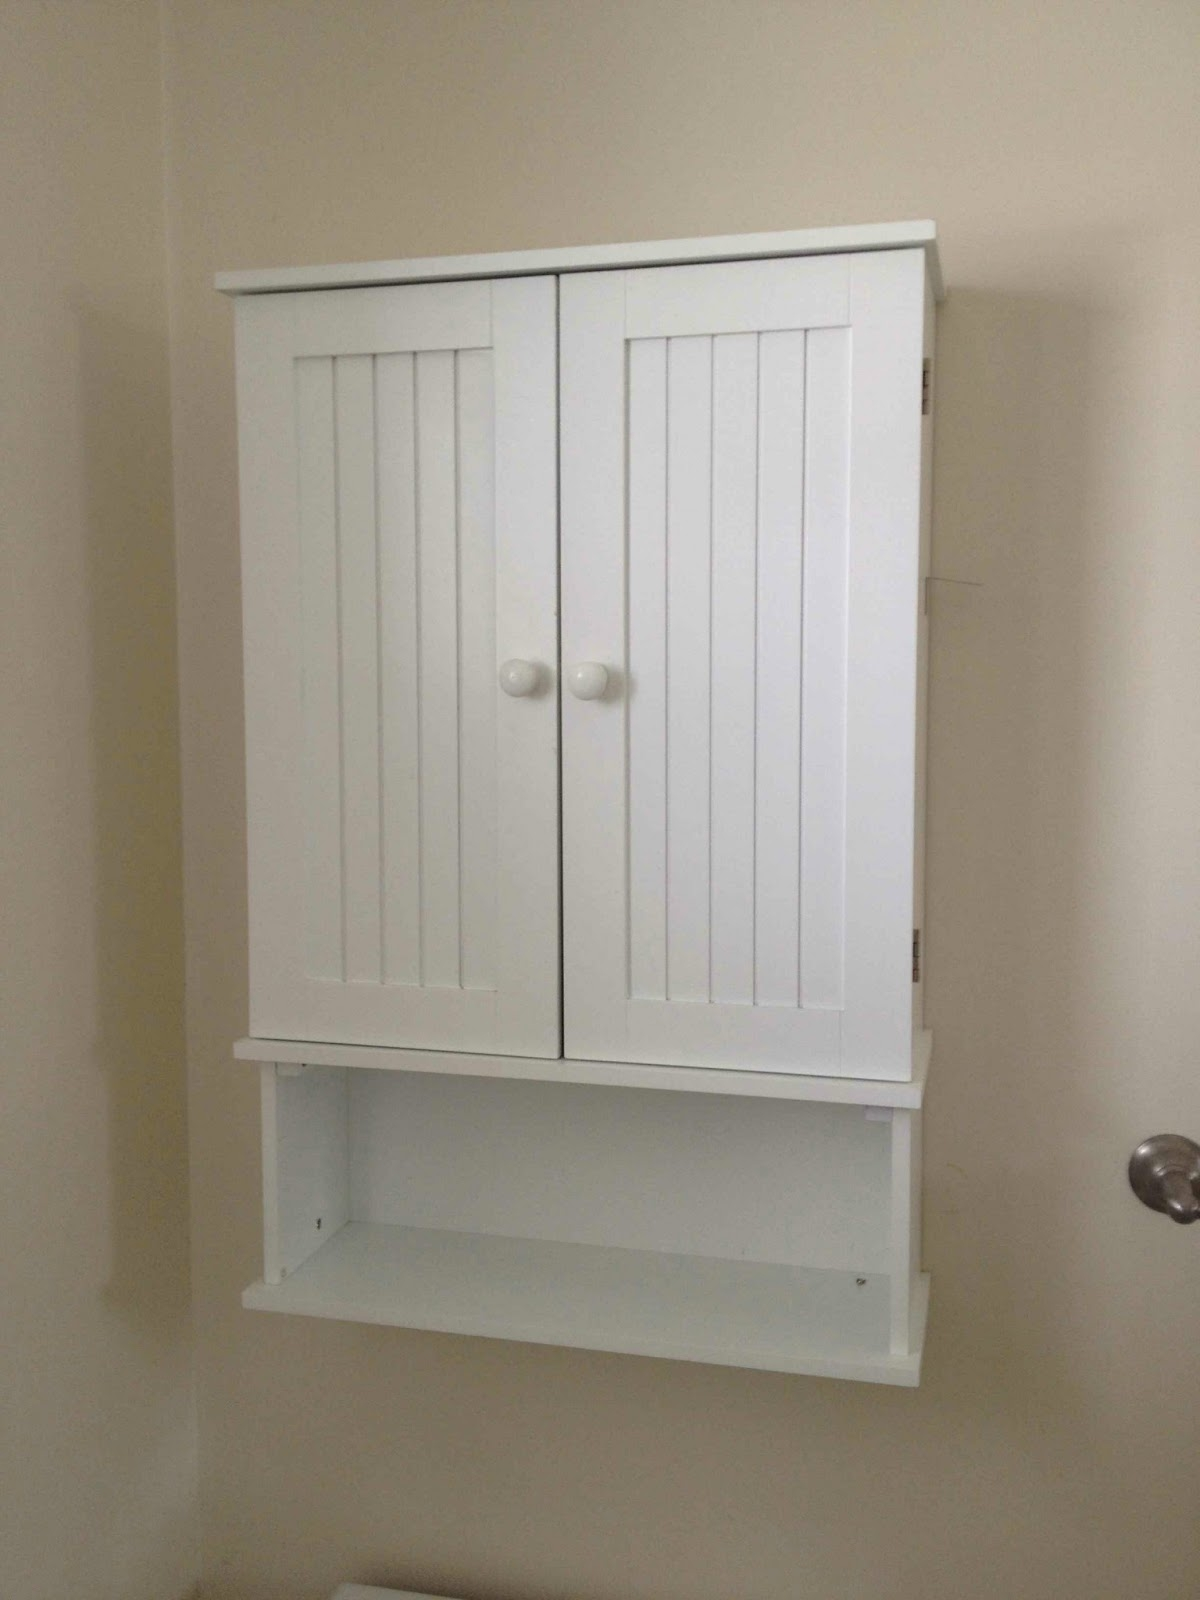 Permalink to Bathroom Wall Cabinets White Wood